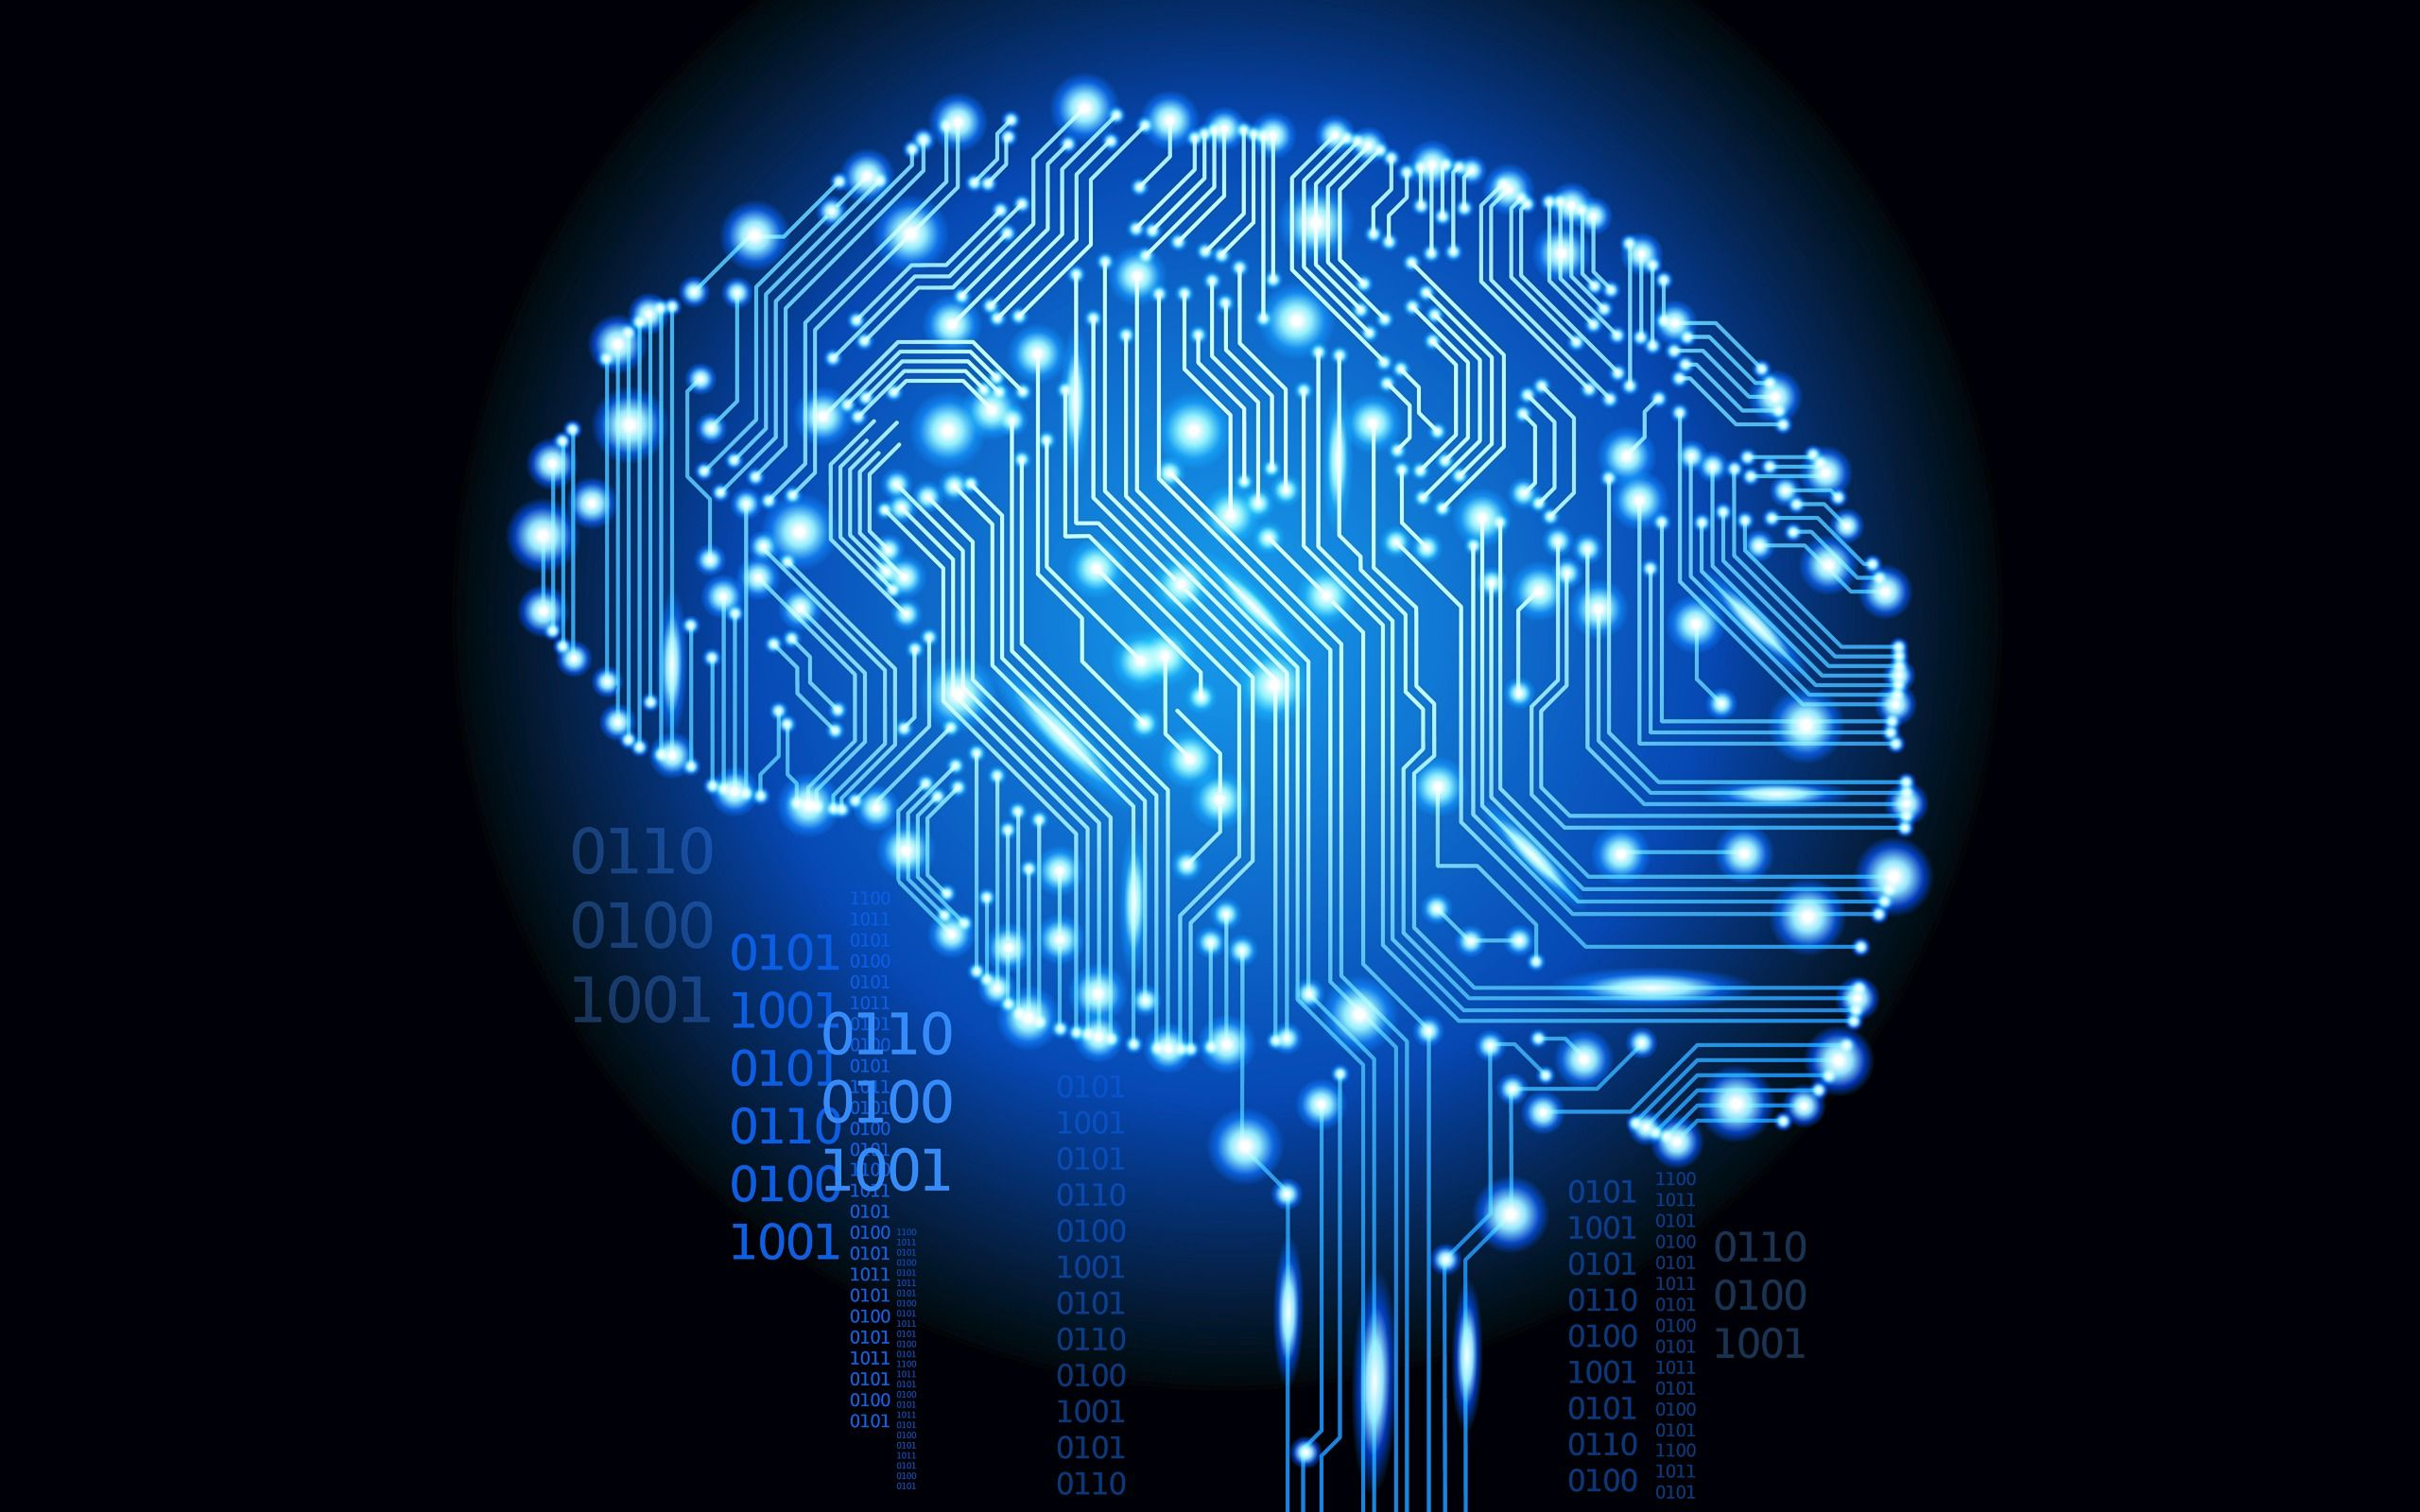 Give Your Computer Brain Worktime With Brain Wallpaper ideas